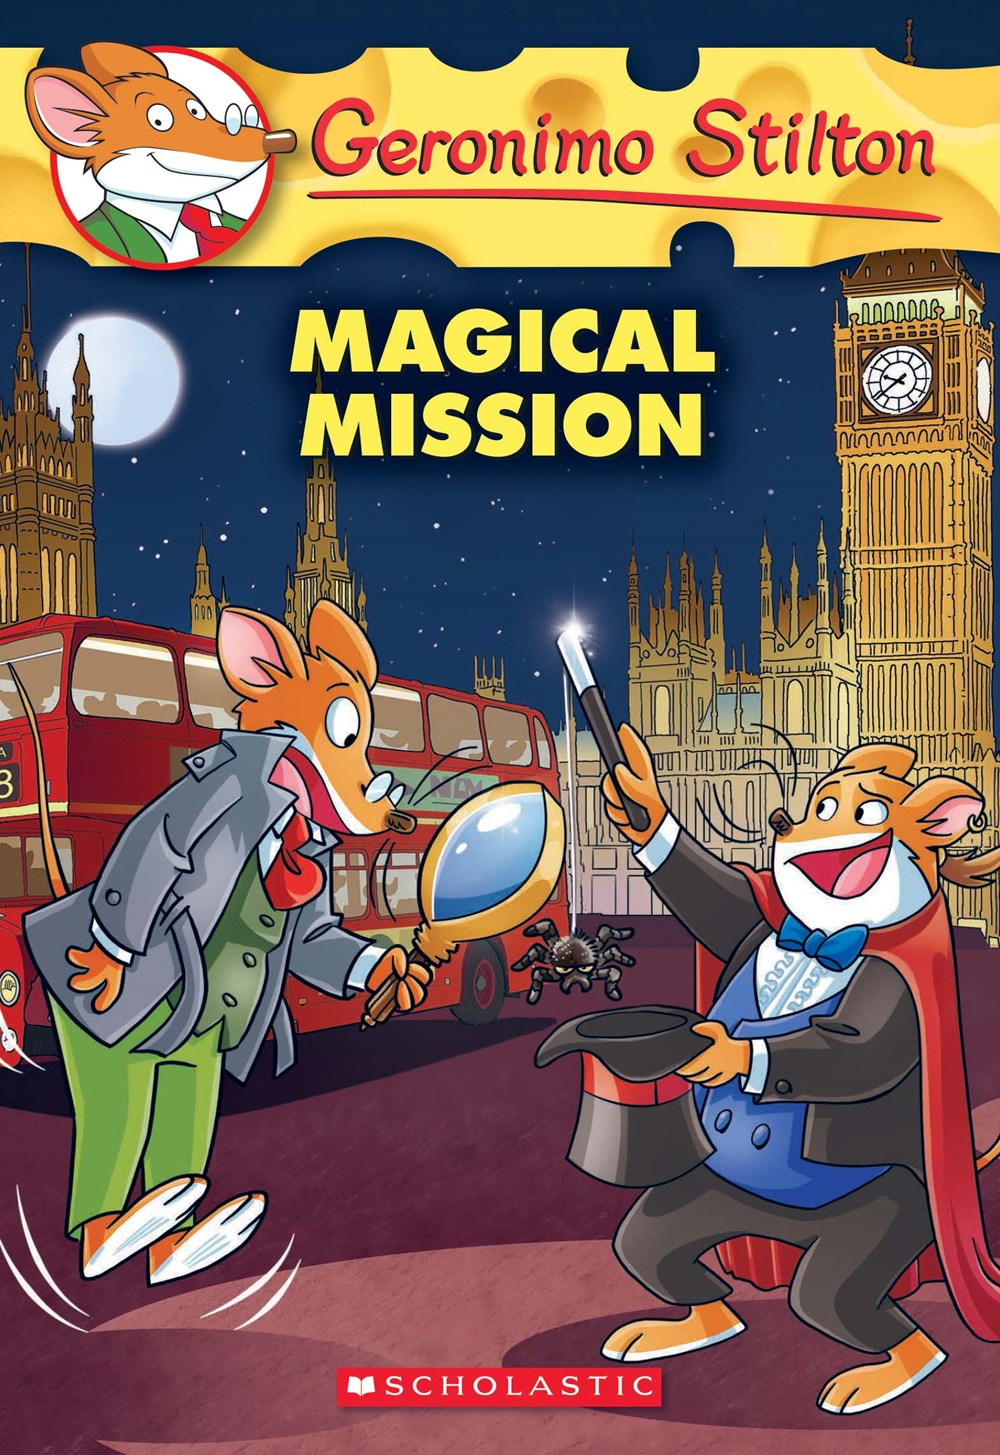 99 Store Near Me >> Geronimo Stilton: Geronimo Stilton #64: Magical Mission ...